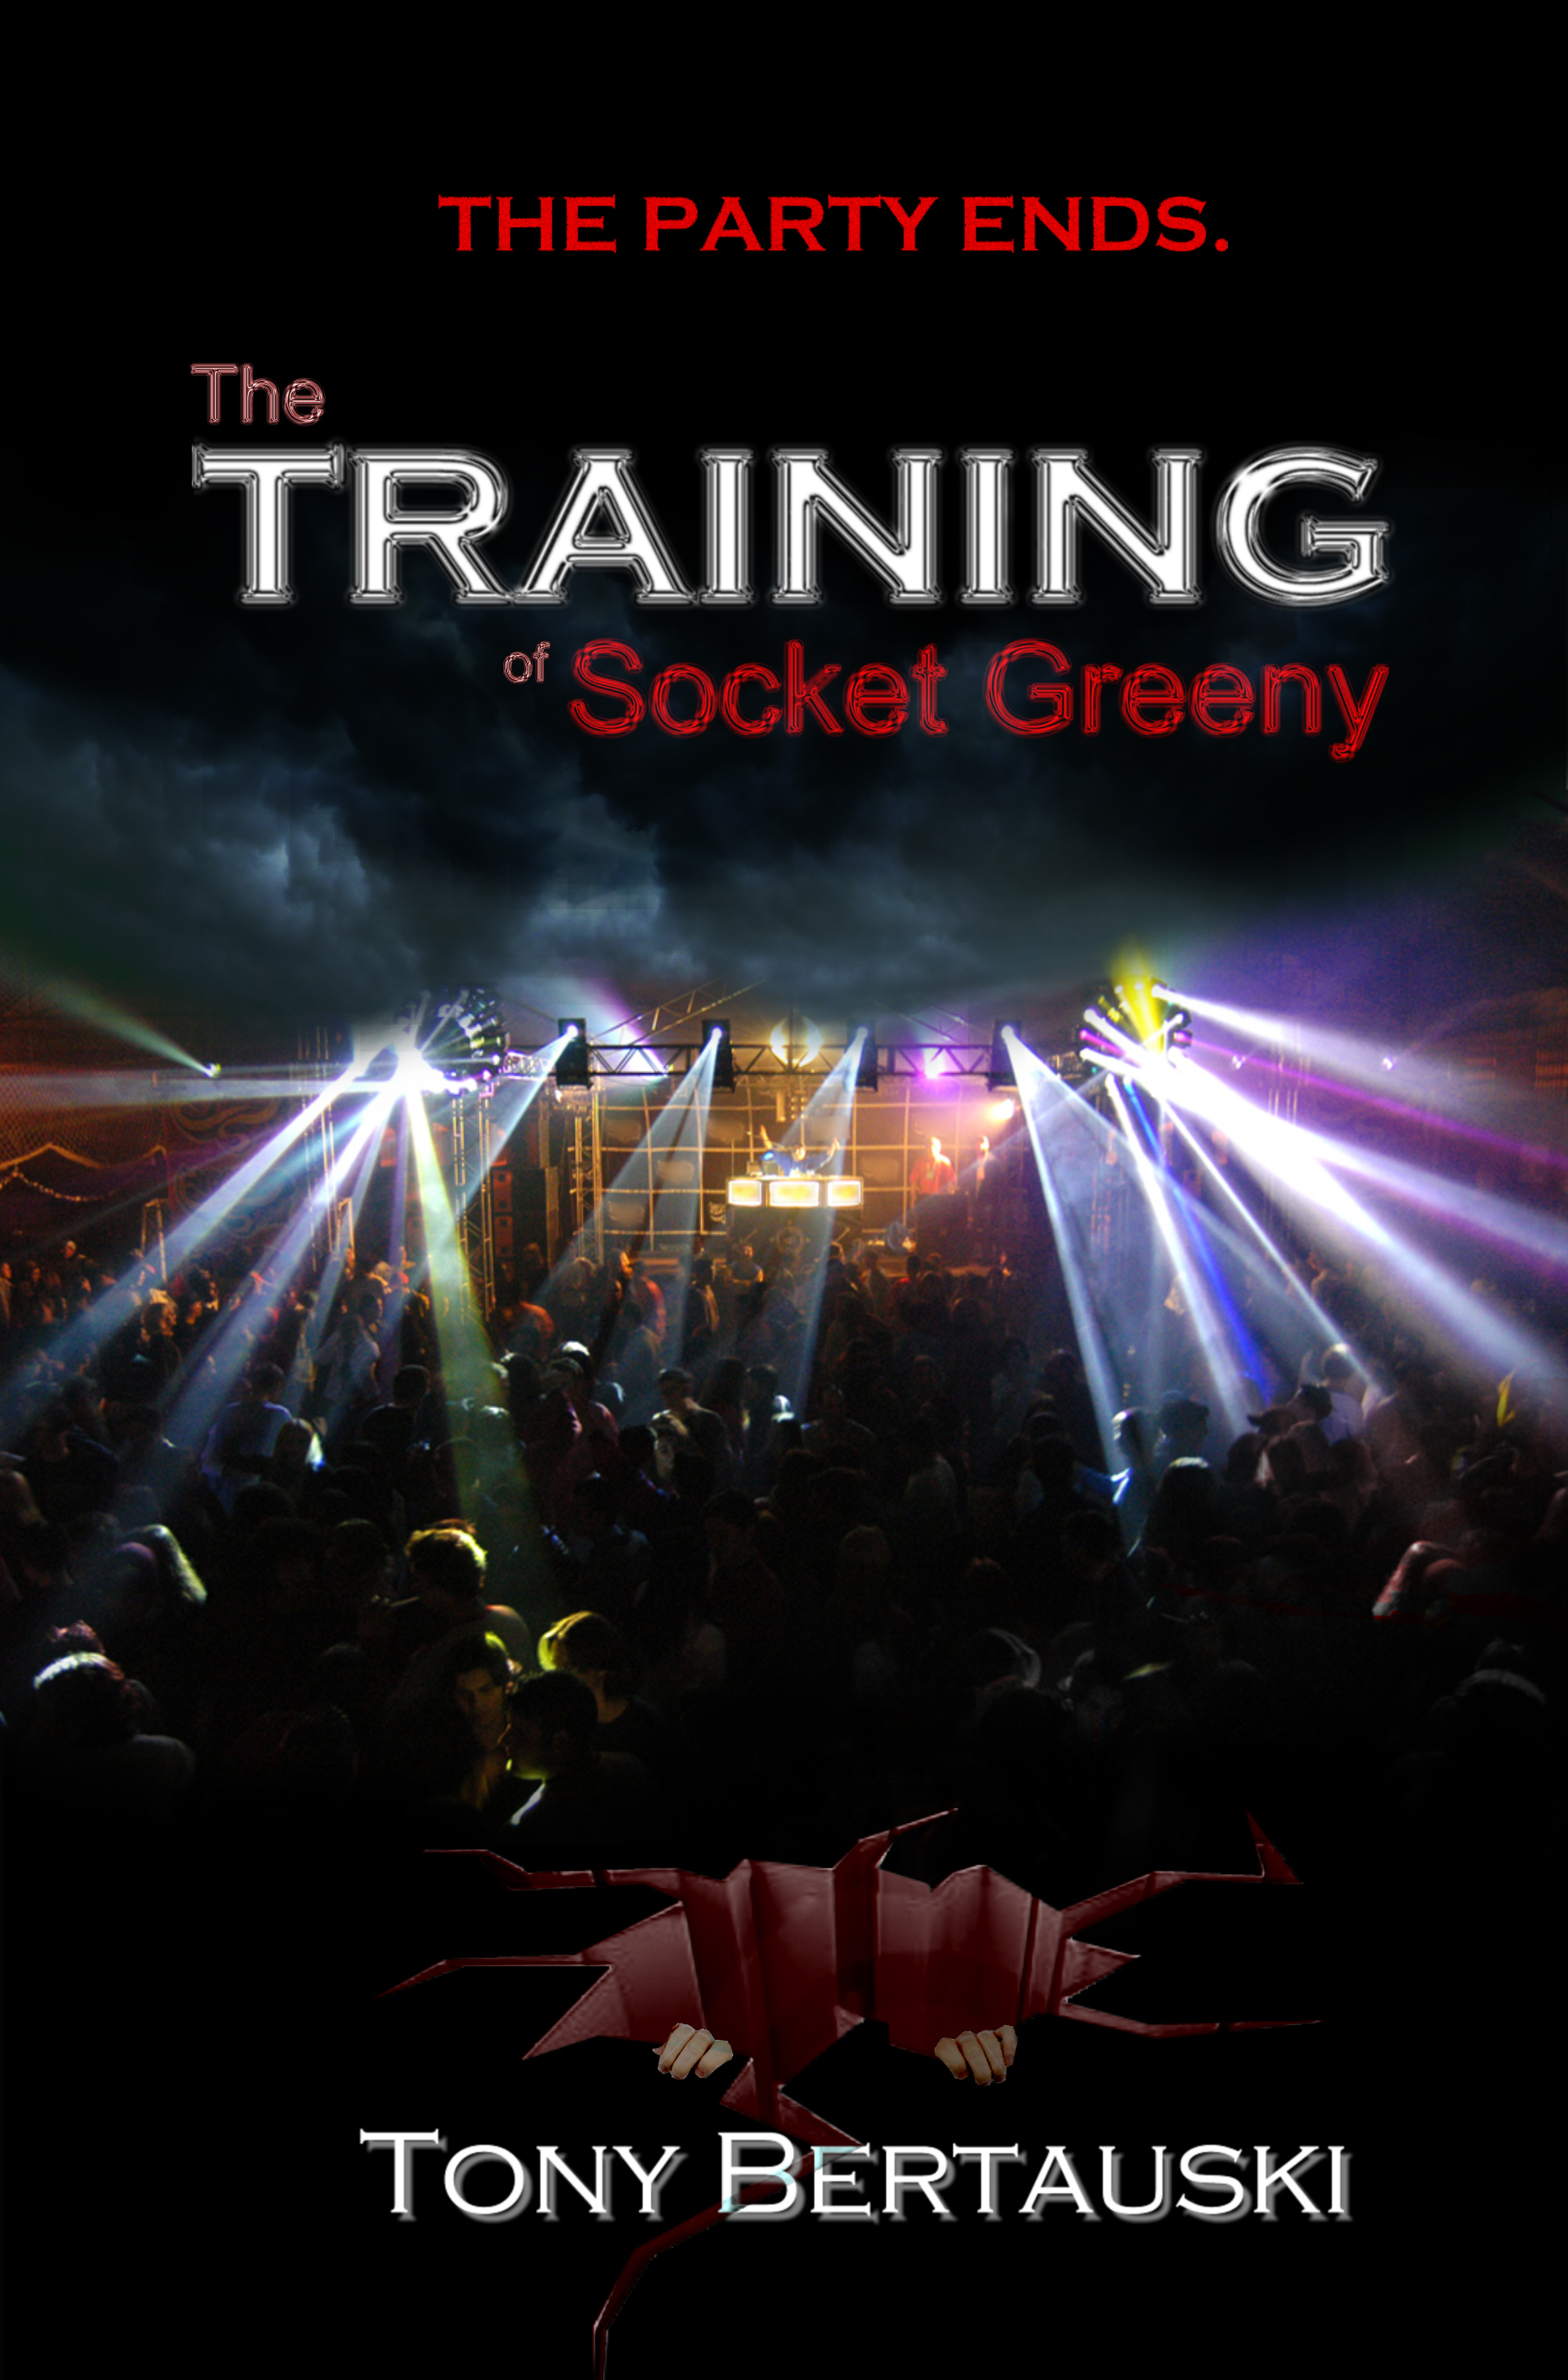 The Training of Socket Greeny